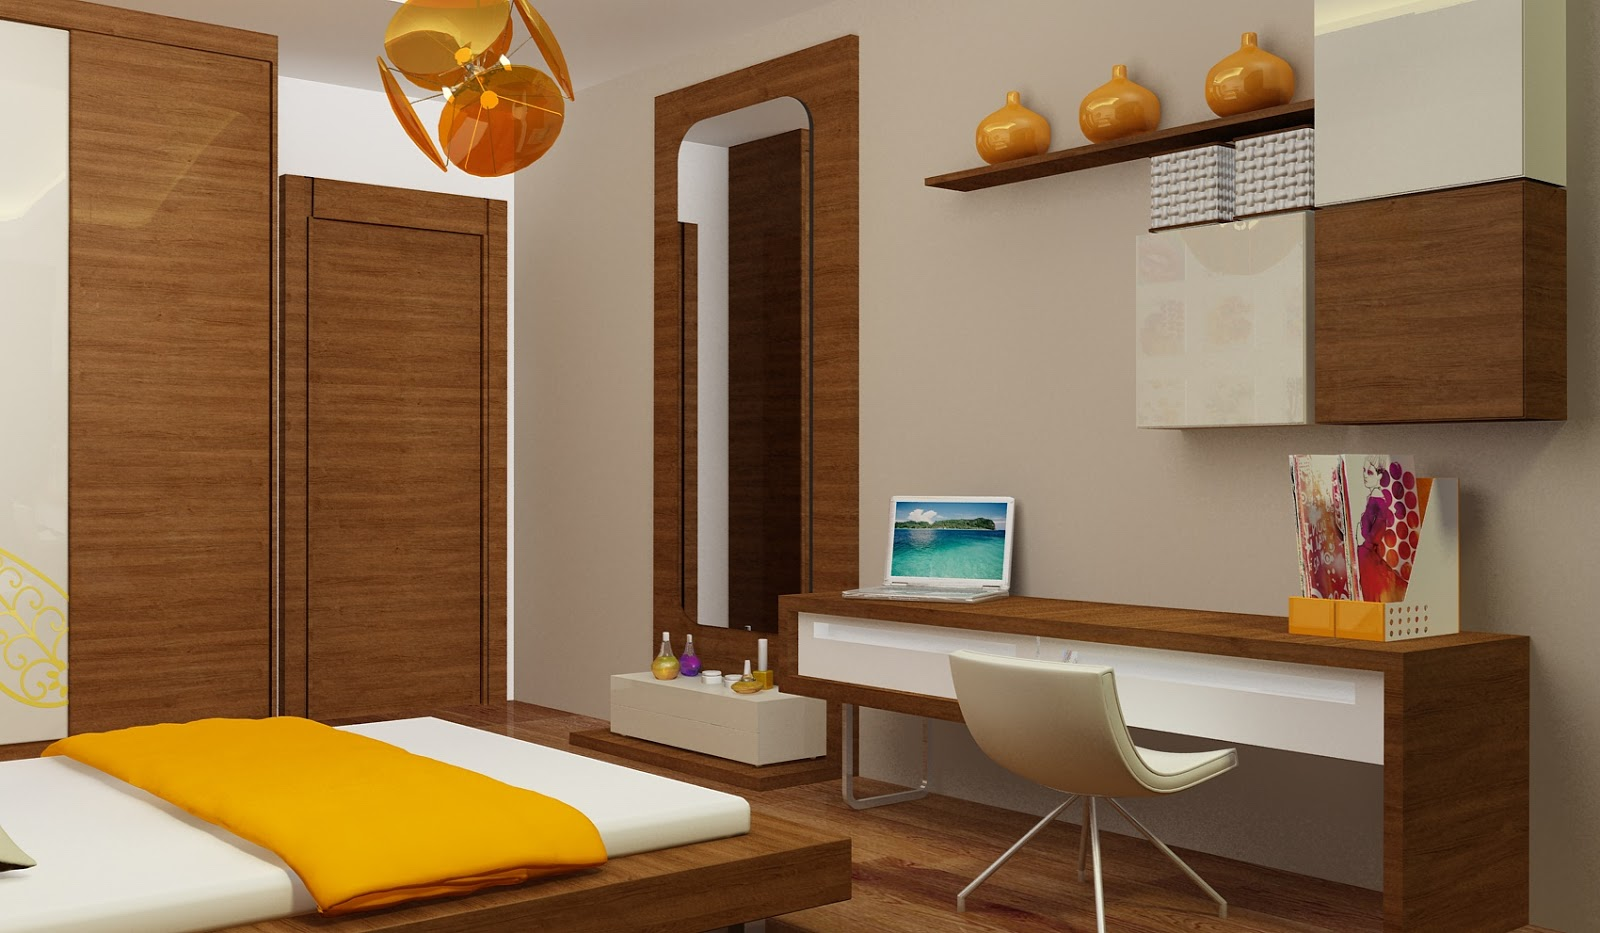 1 Bedroom Apartment Interior Decorating